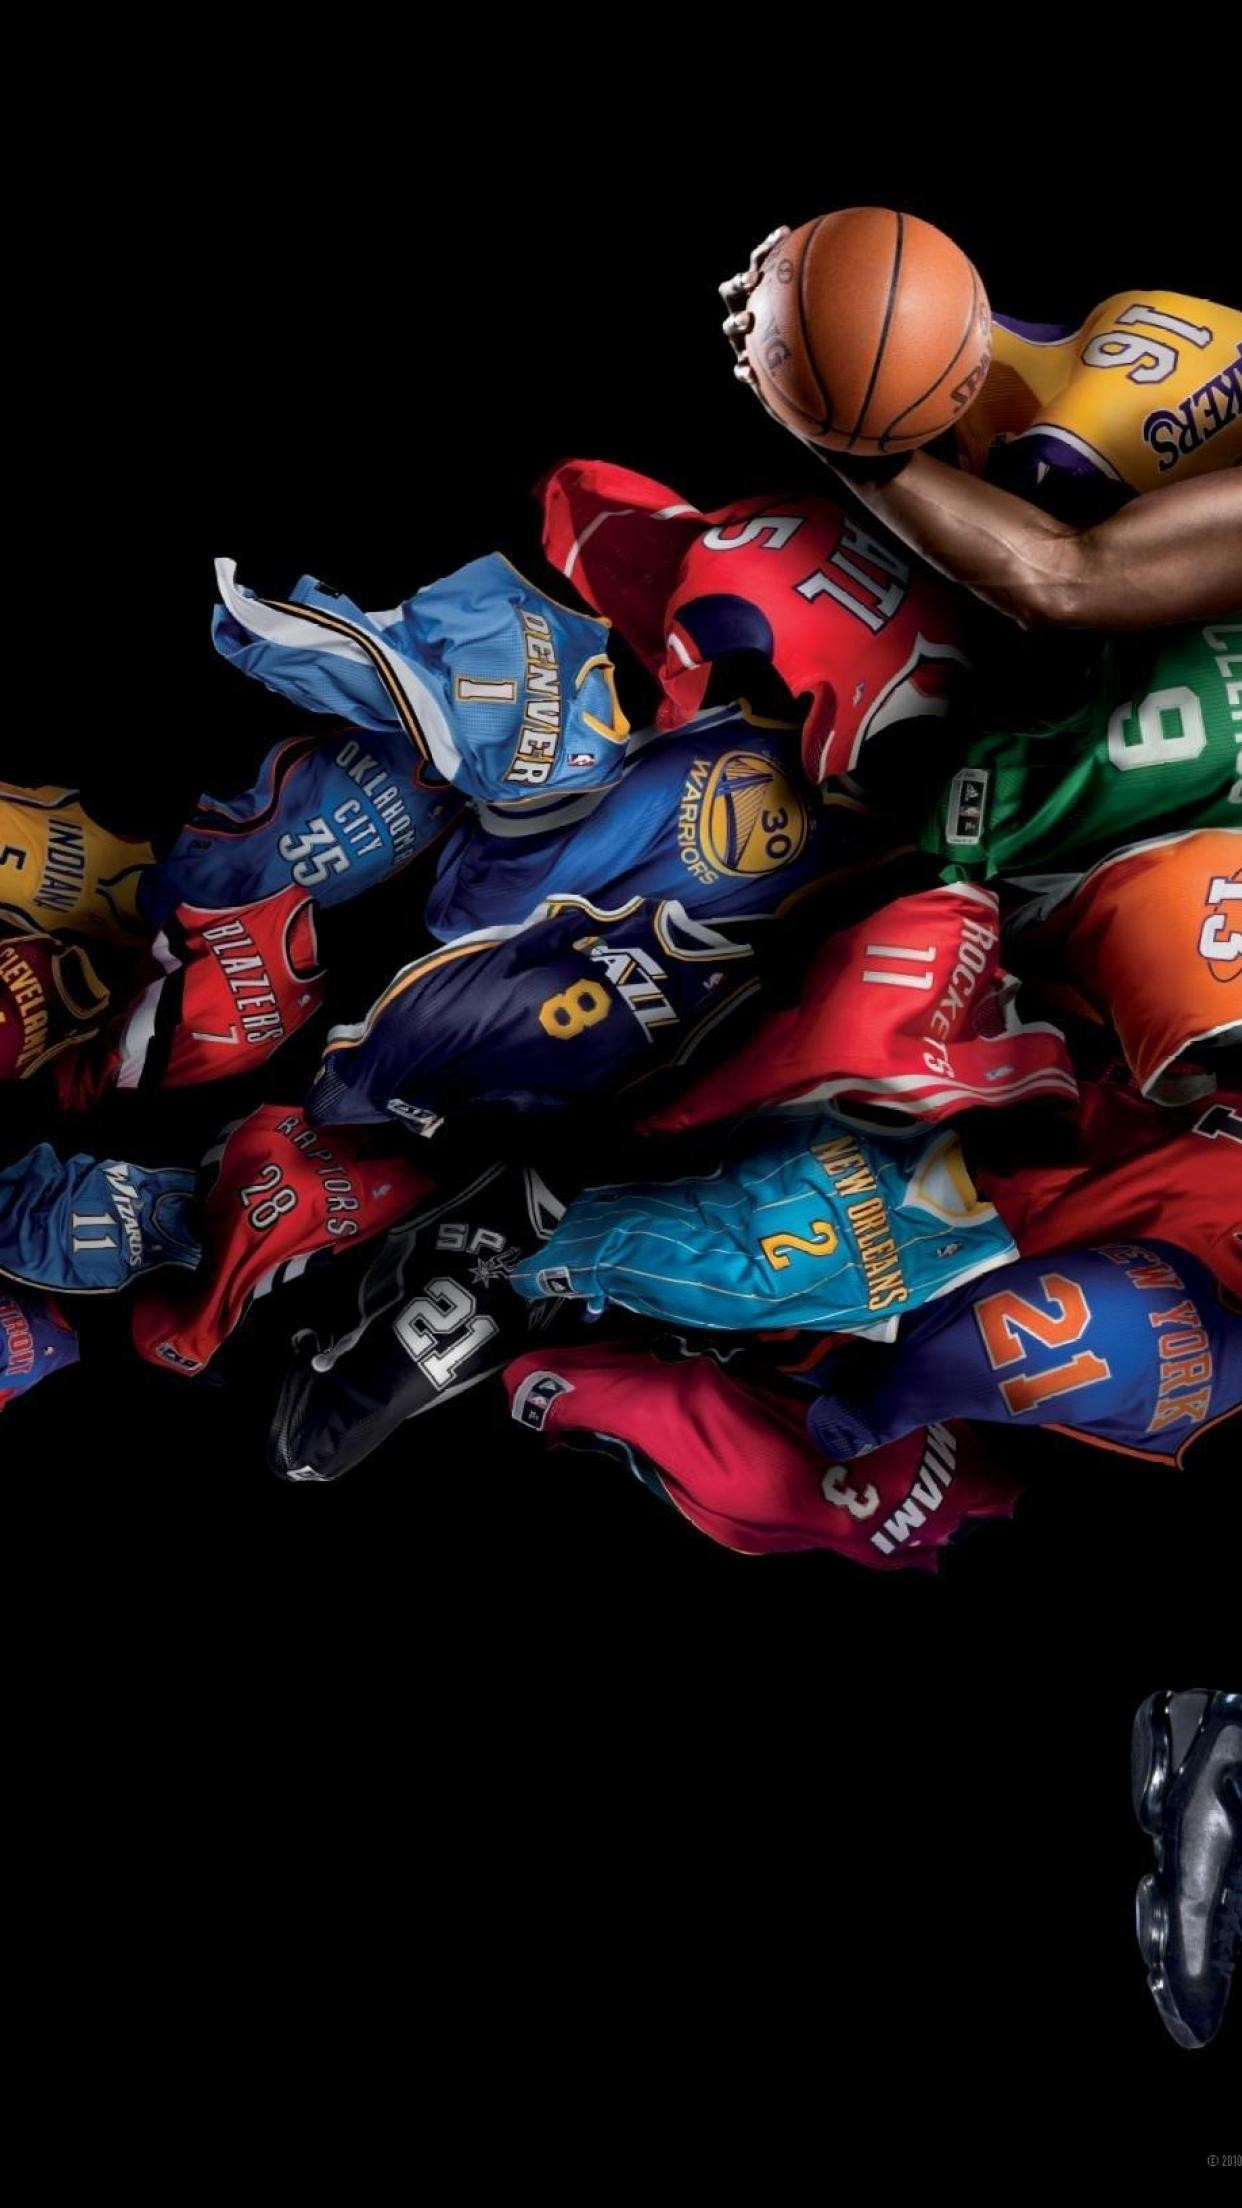 0 NBA Wallpapers For IPhone Group Nba Basketball HD Wallpapers, Desktop  Backgrounds, Mobile .